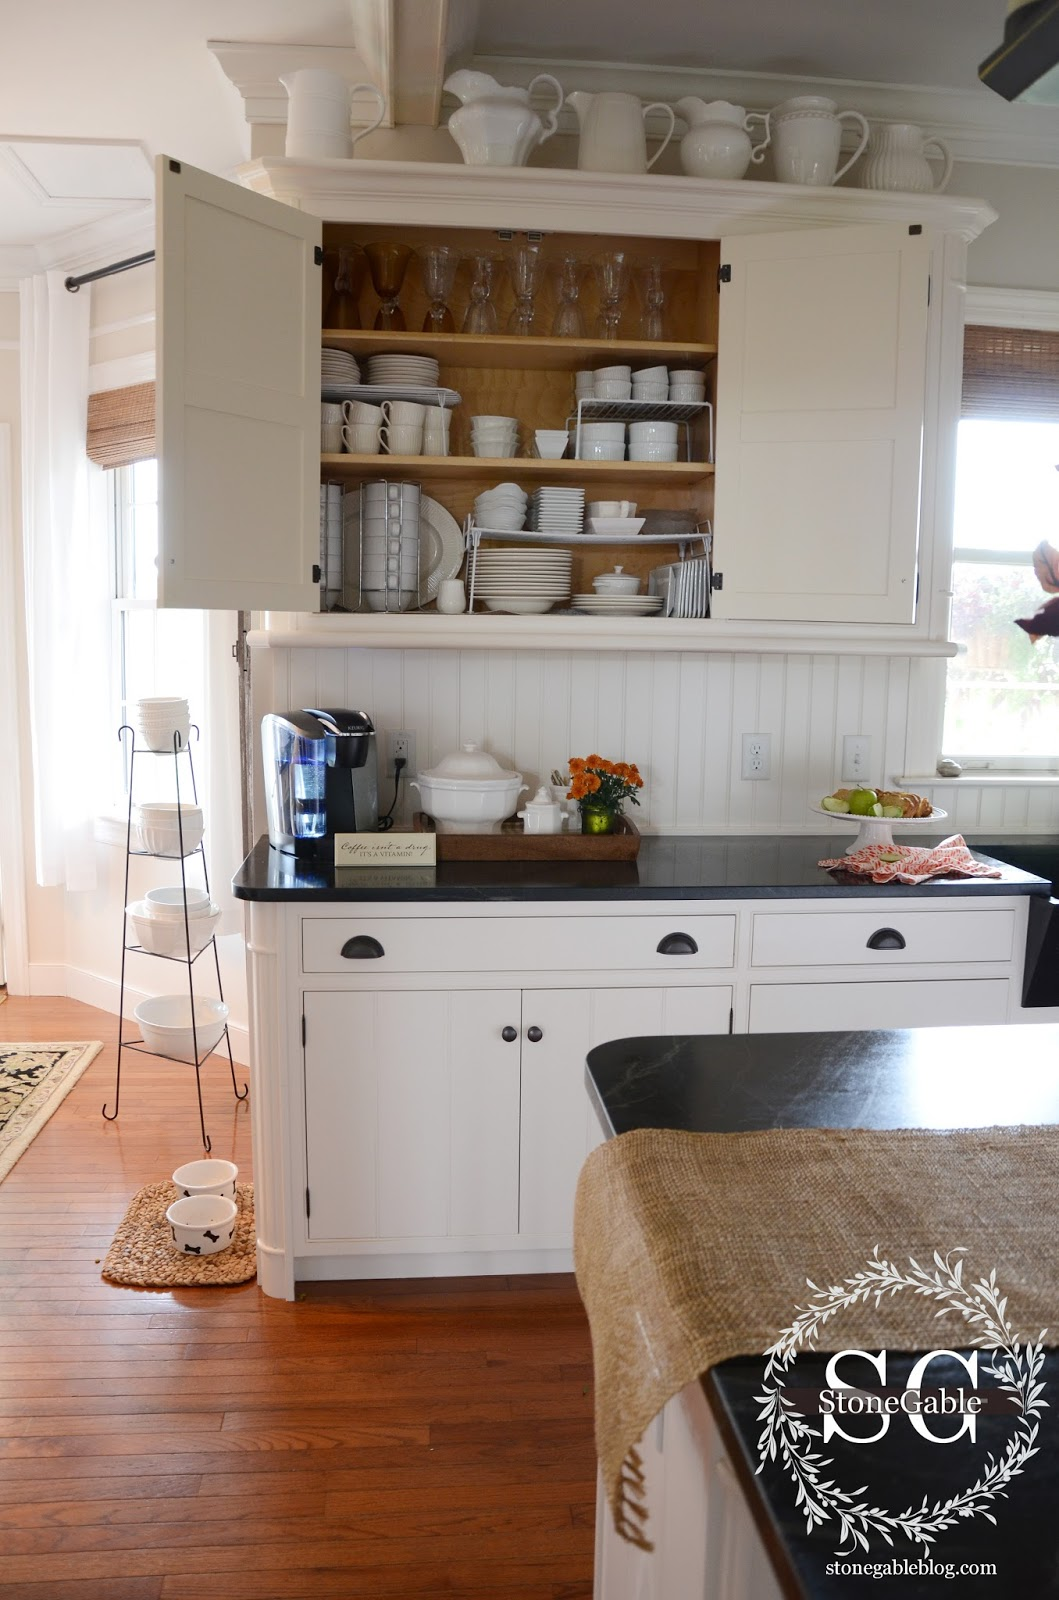 ALL ABOUT THE DETAILS KITCHEN HOME TOUR - StoneGable